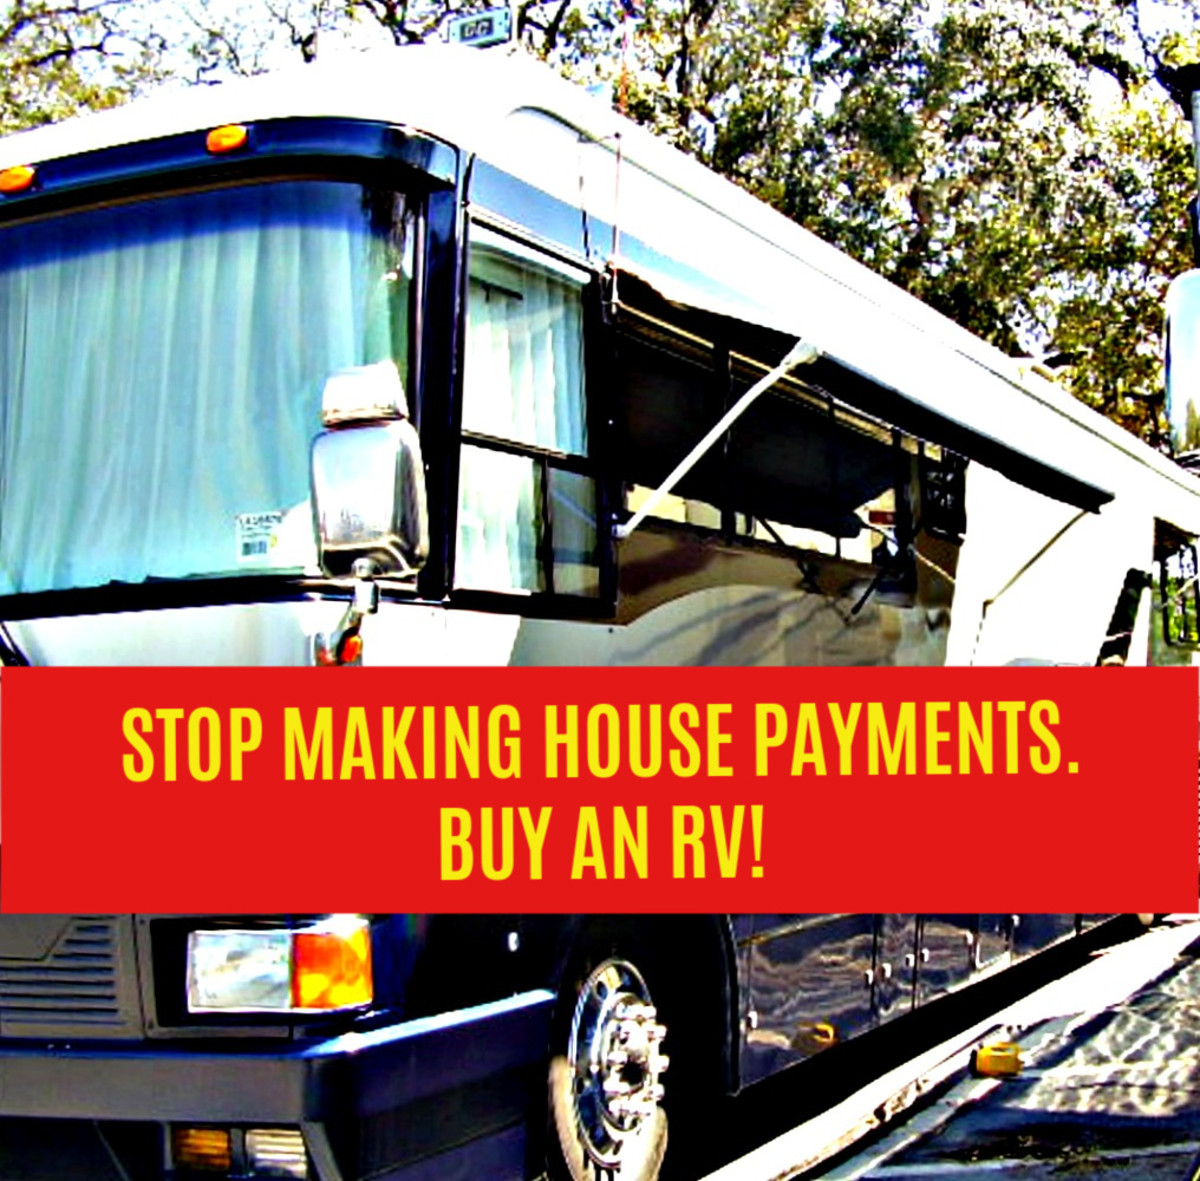 Living in a recreational vehicle can relieve you of many burdensome expenses.